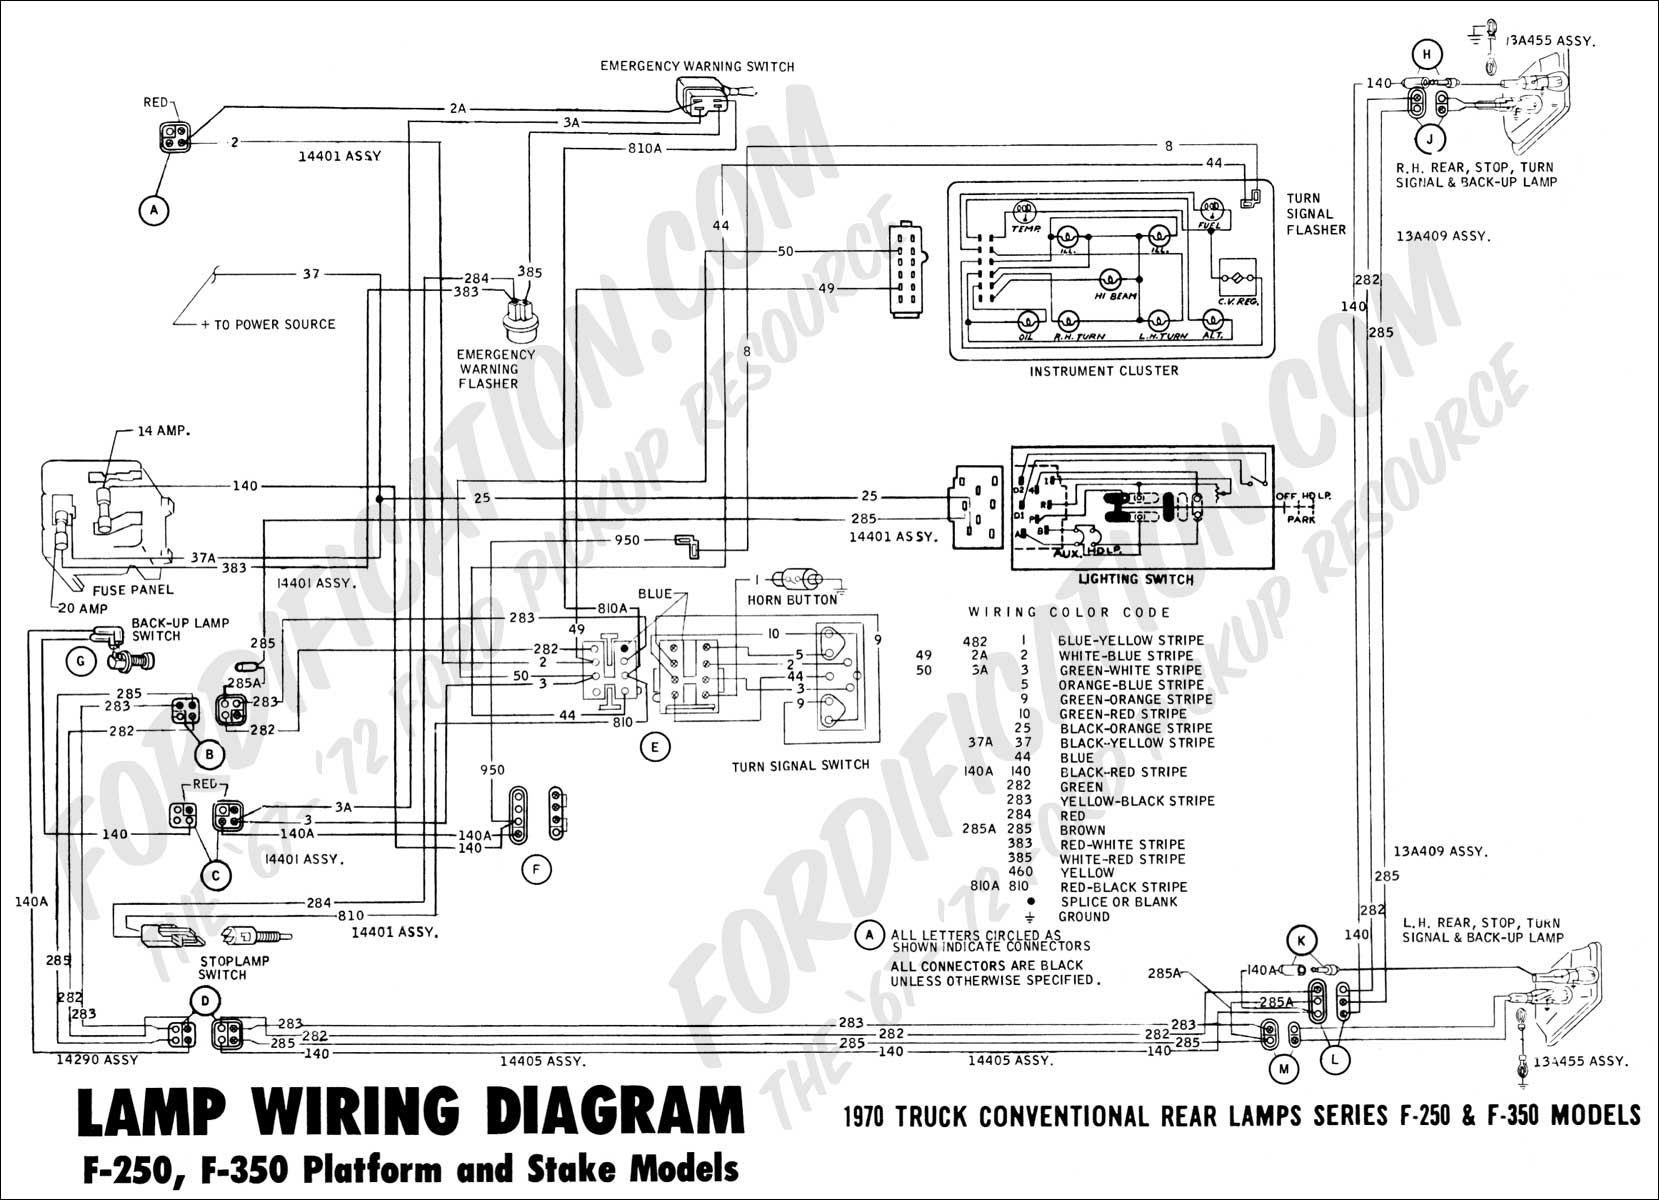 1973 Ford Ignition Wiring Diagram Great Design Of Dodge Ram Diagrams F 250 Get Free Image About Switch